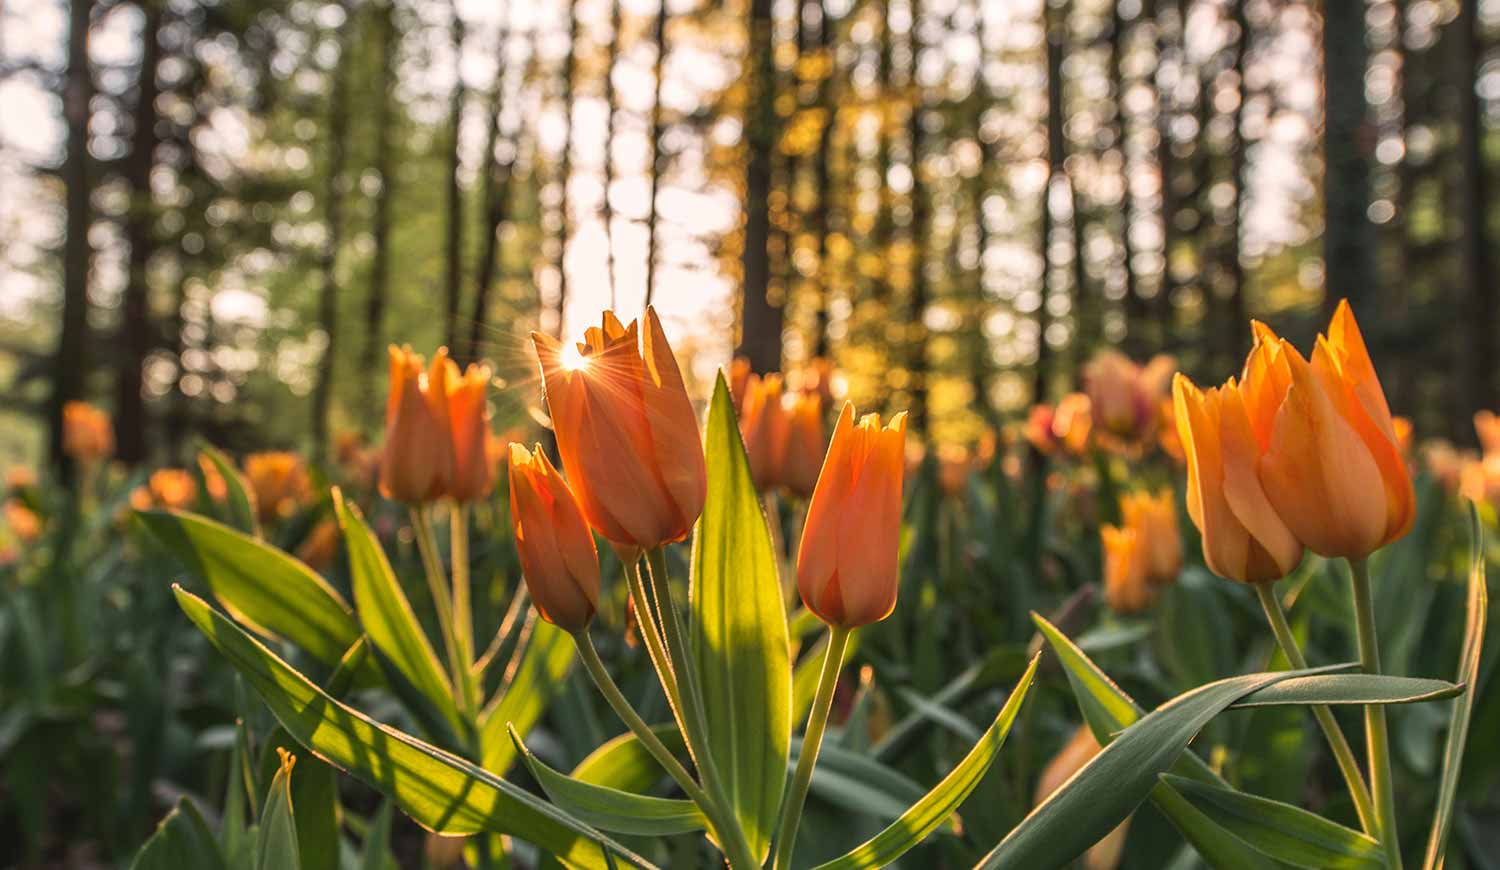 Tulips growing in sunlight